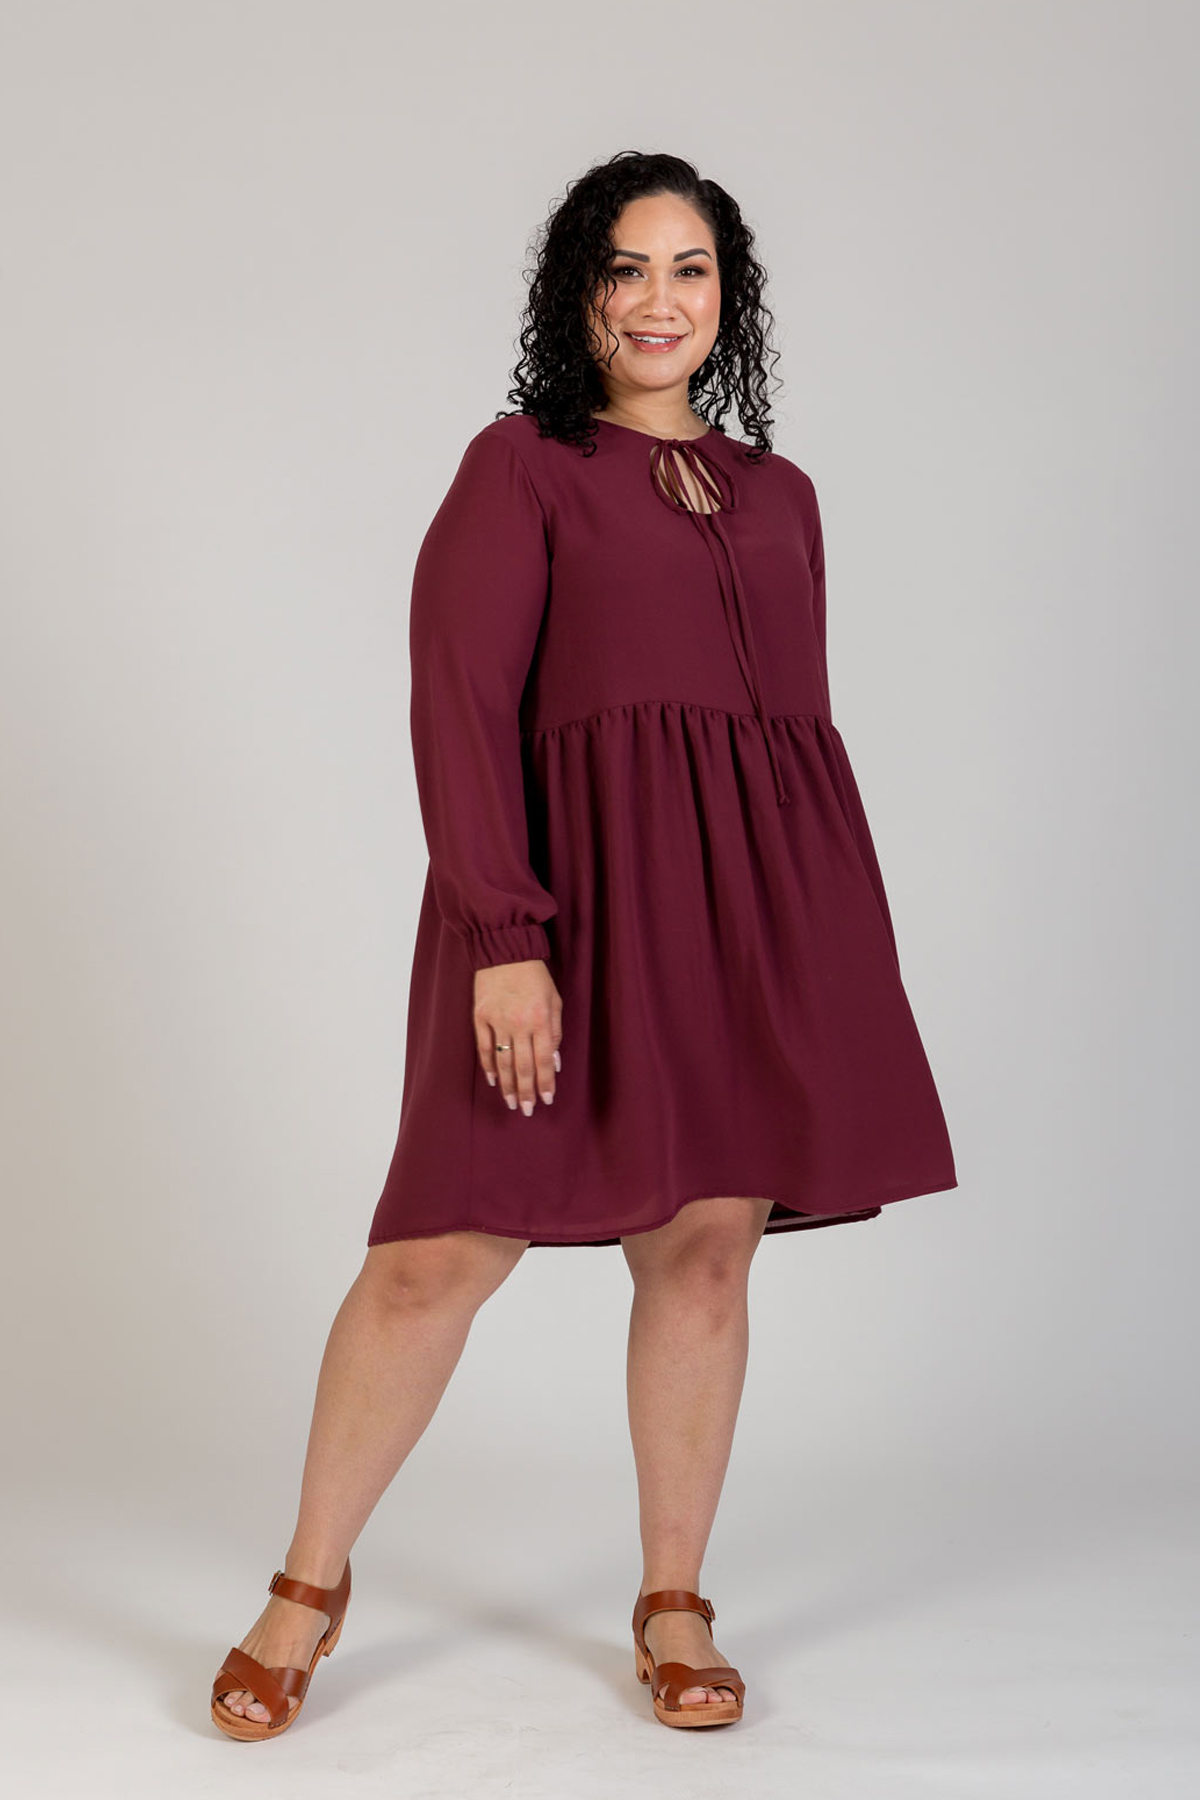 Megan Nielsen Sudley Curve dress View C includes long sleeves with elastic cuffs, a gathered skirt, full lining and lovely long ties. Keyhole can be worn at the back or front of this clever design.